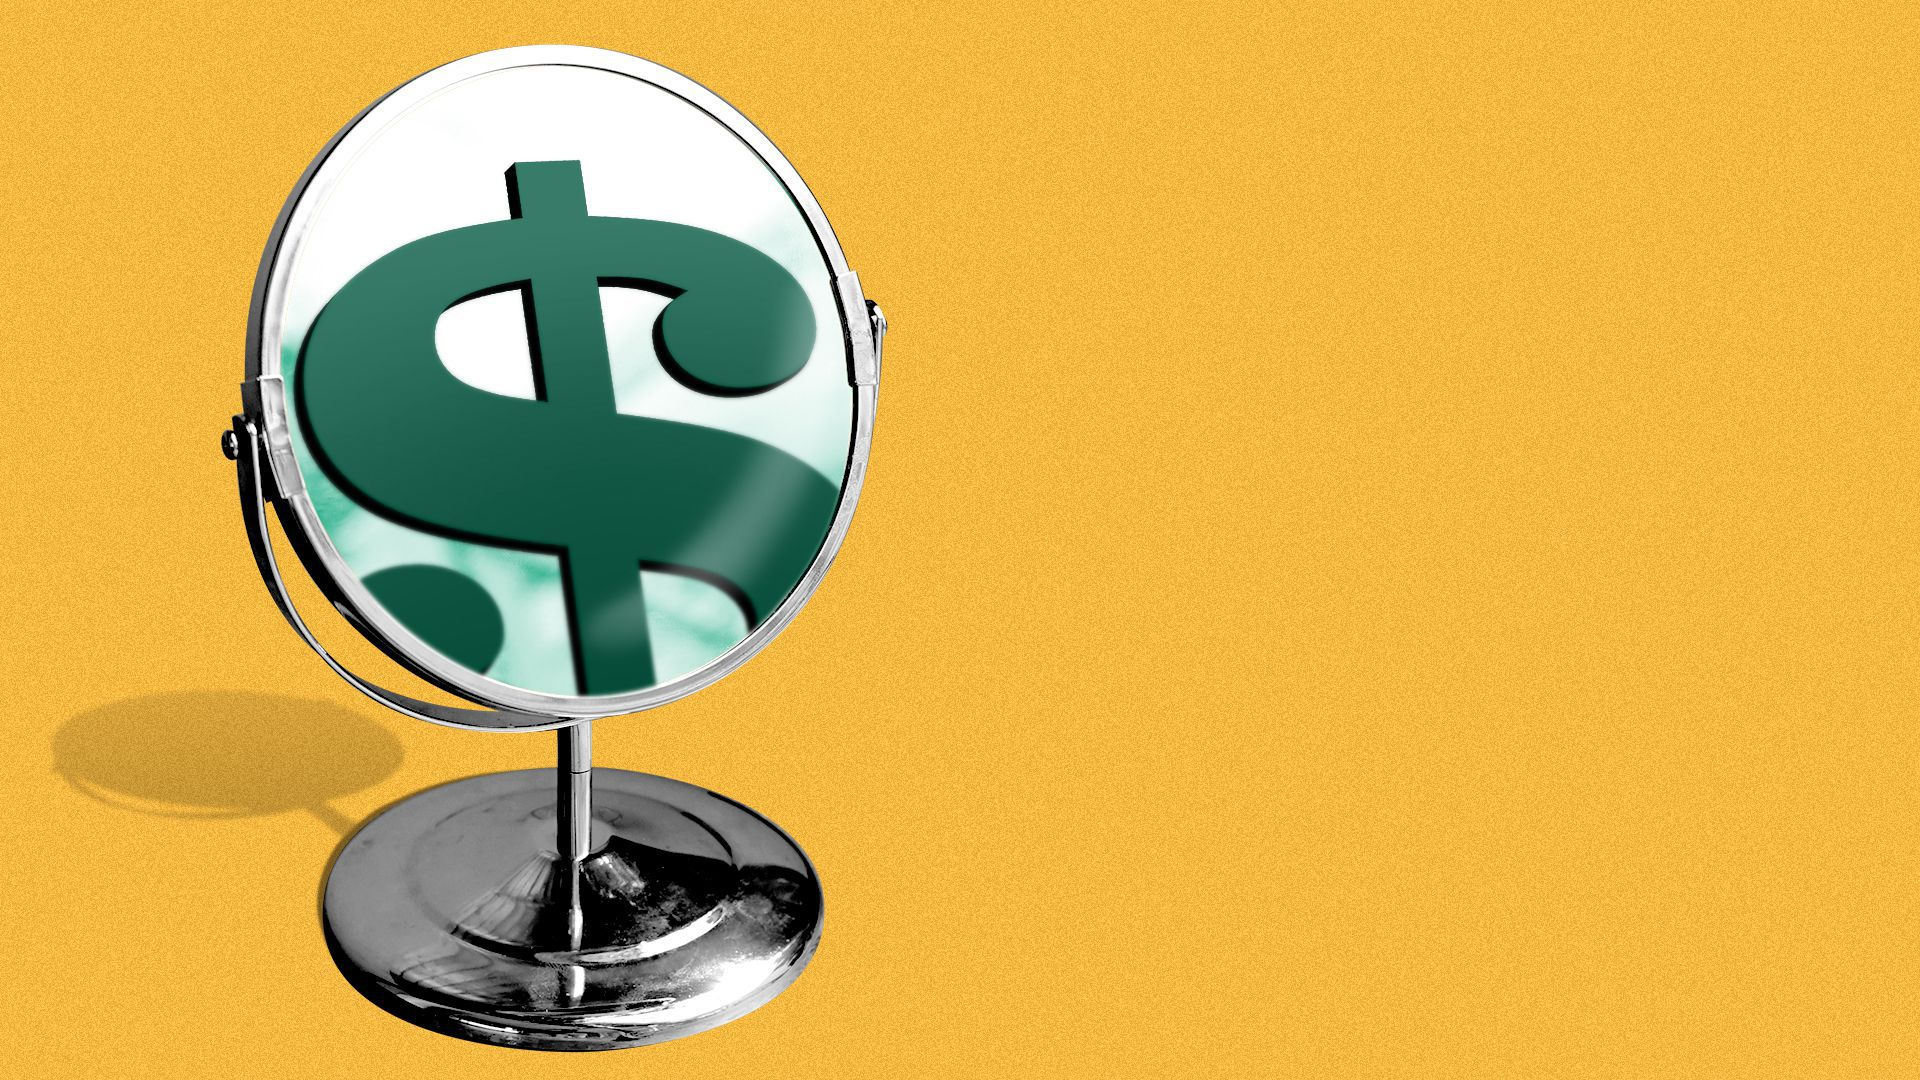 Illustration of a mirror with a dollar sign reflected in it.